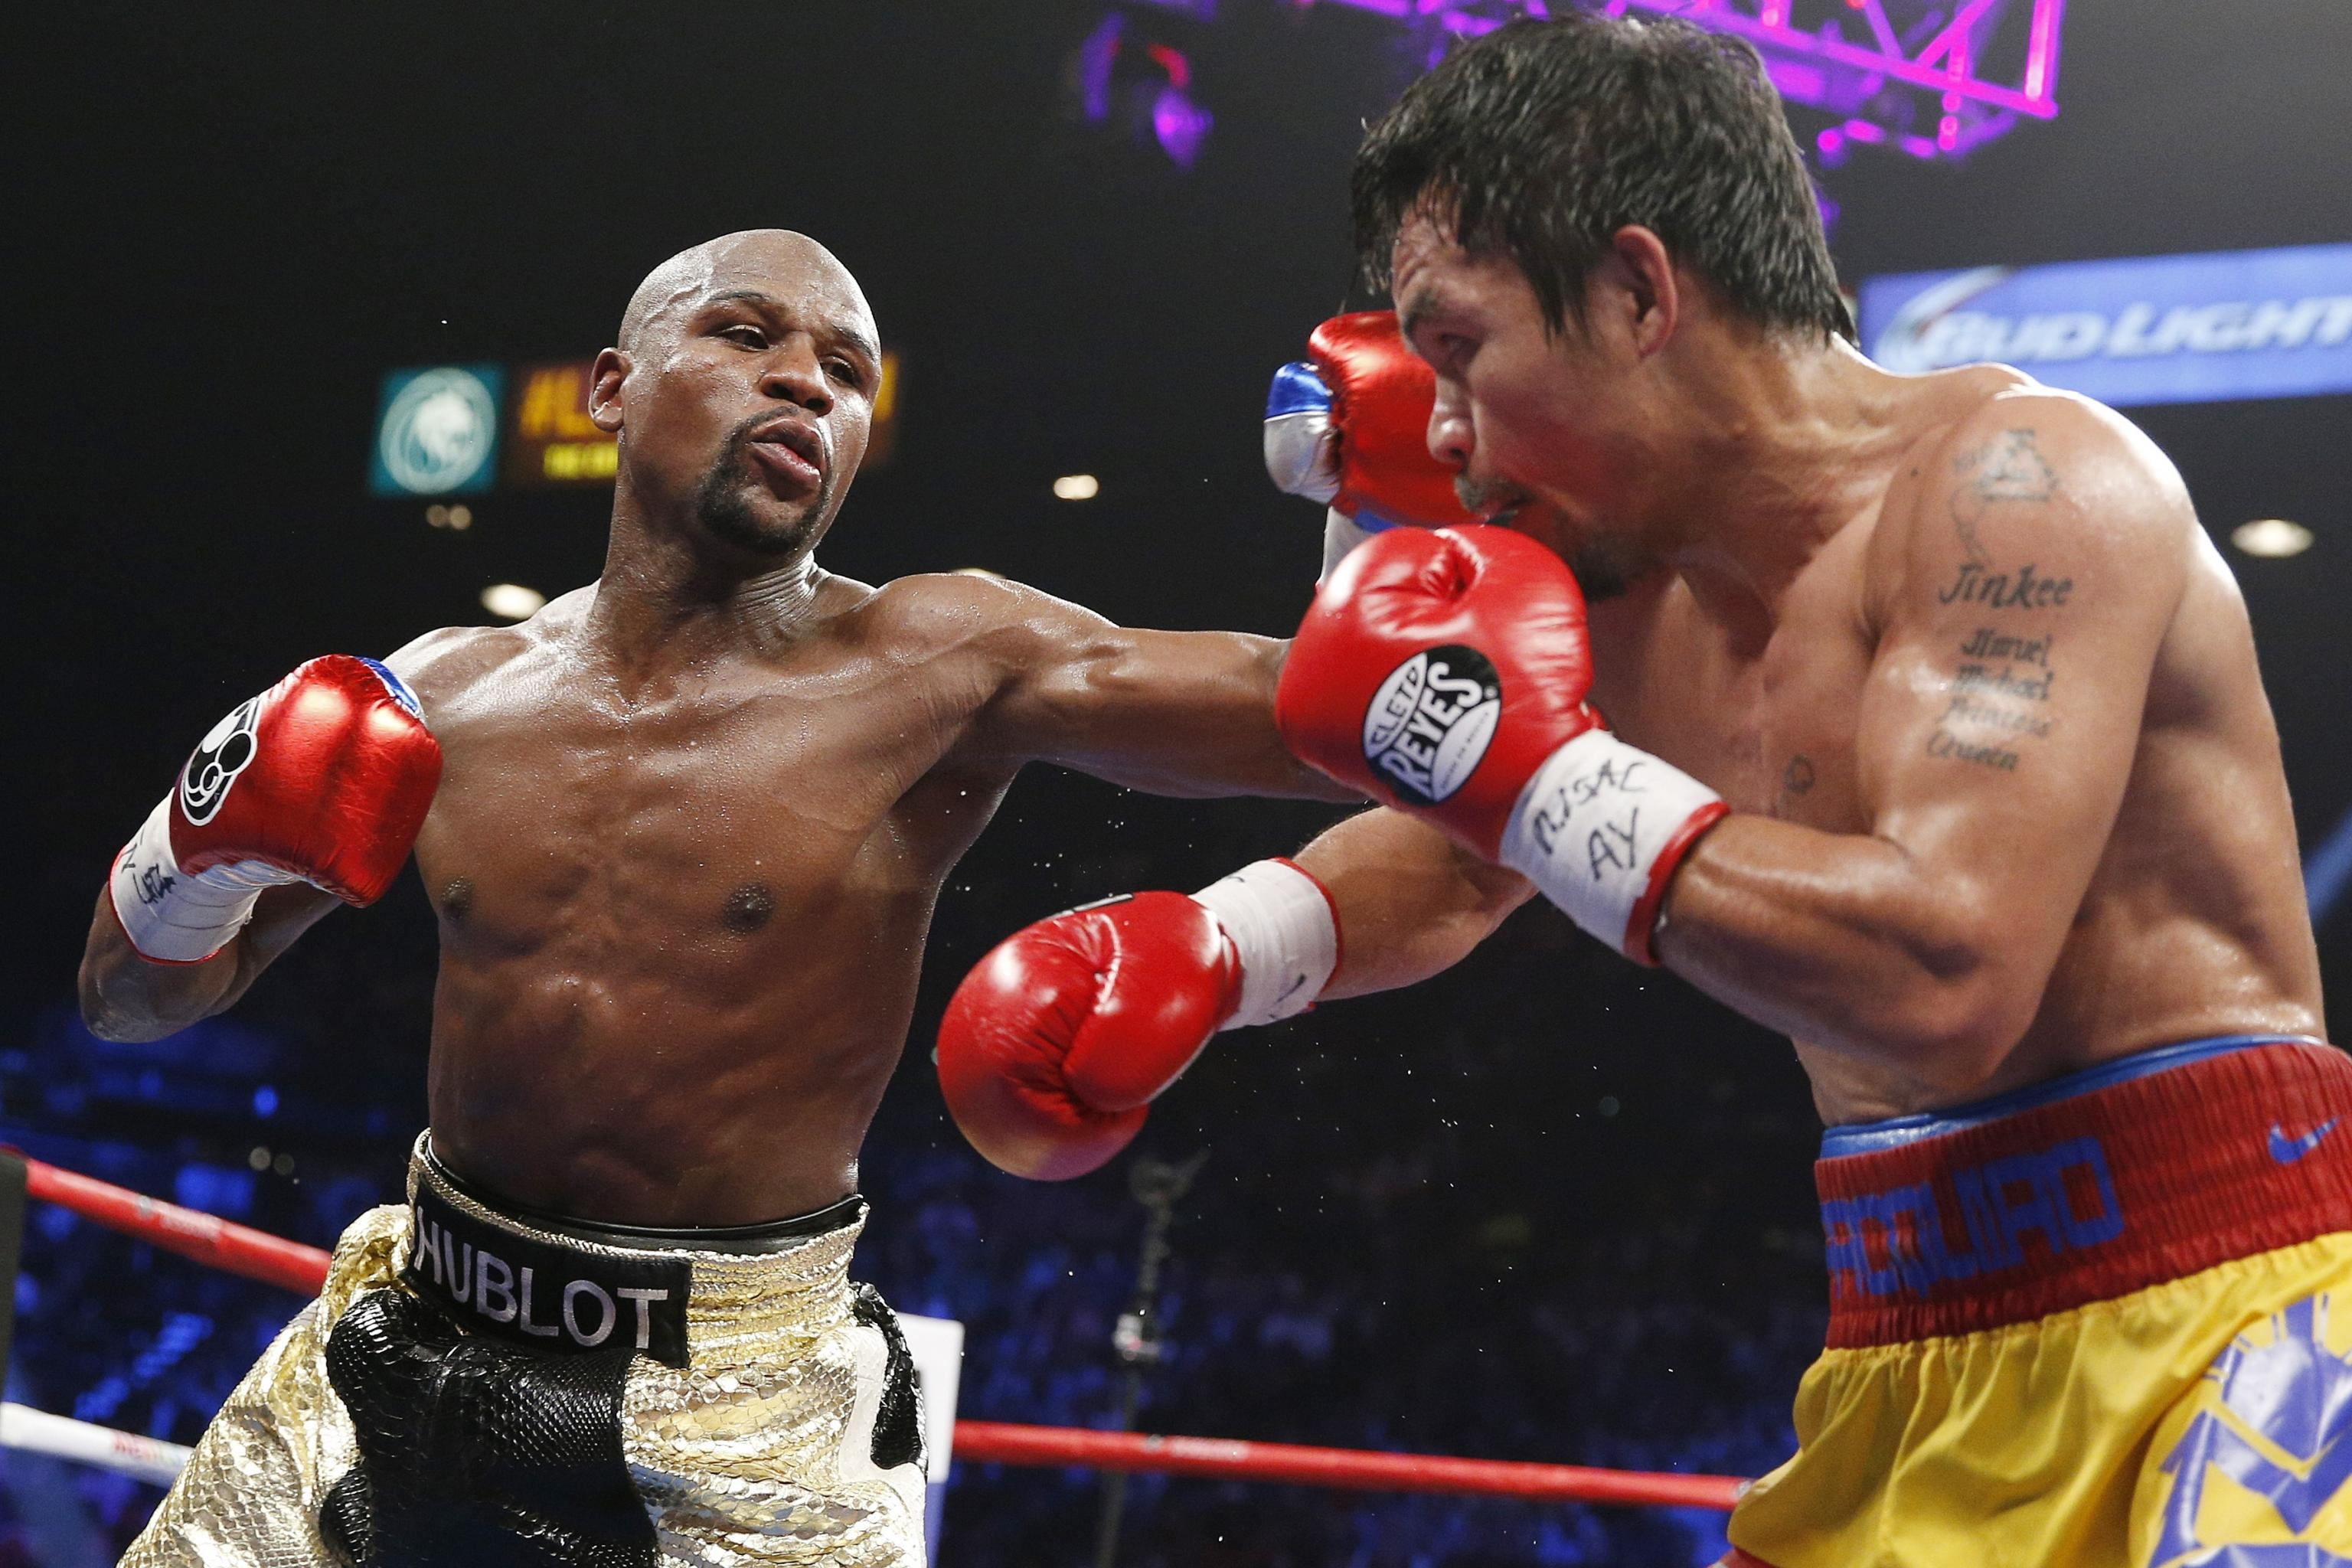 Floyd Mayweather Vs Manny Pacquiao 2 Odds Money Opens As Early Favorite Bleacher Report Latest News Videos And Highlights